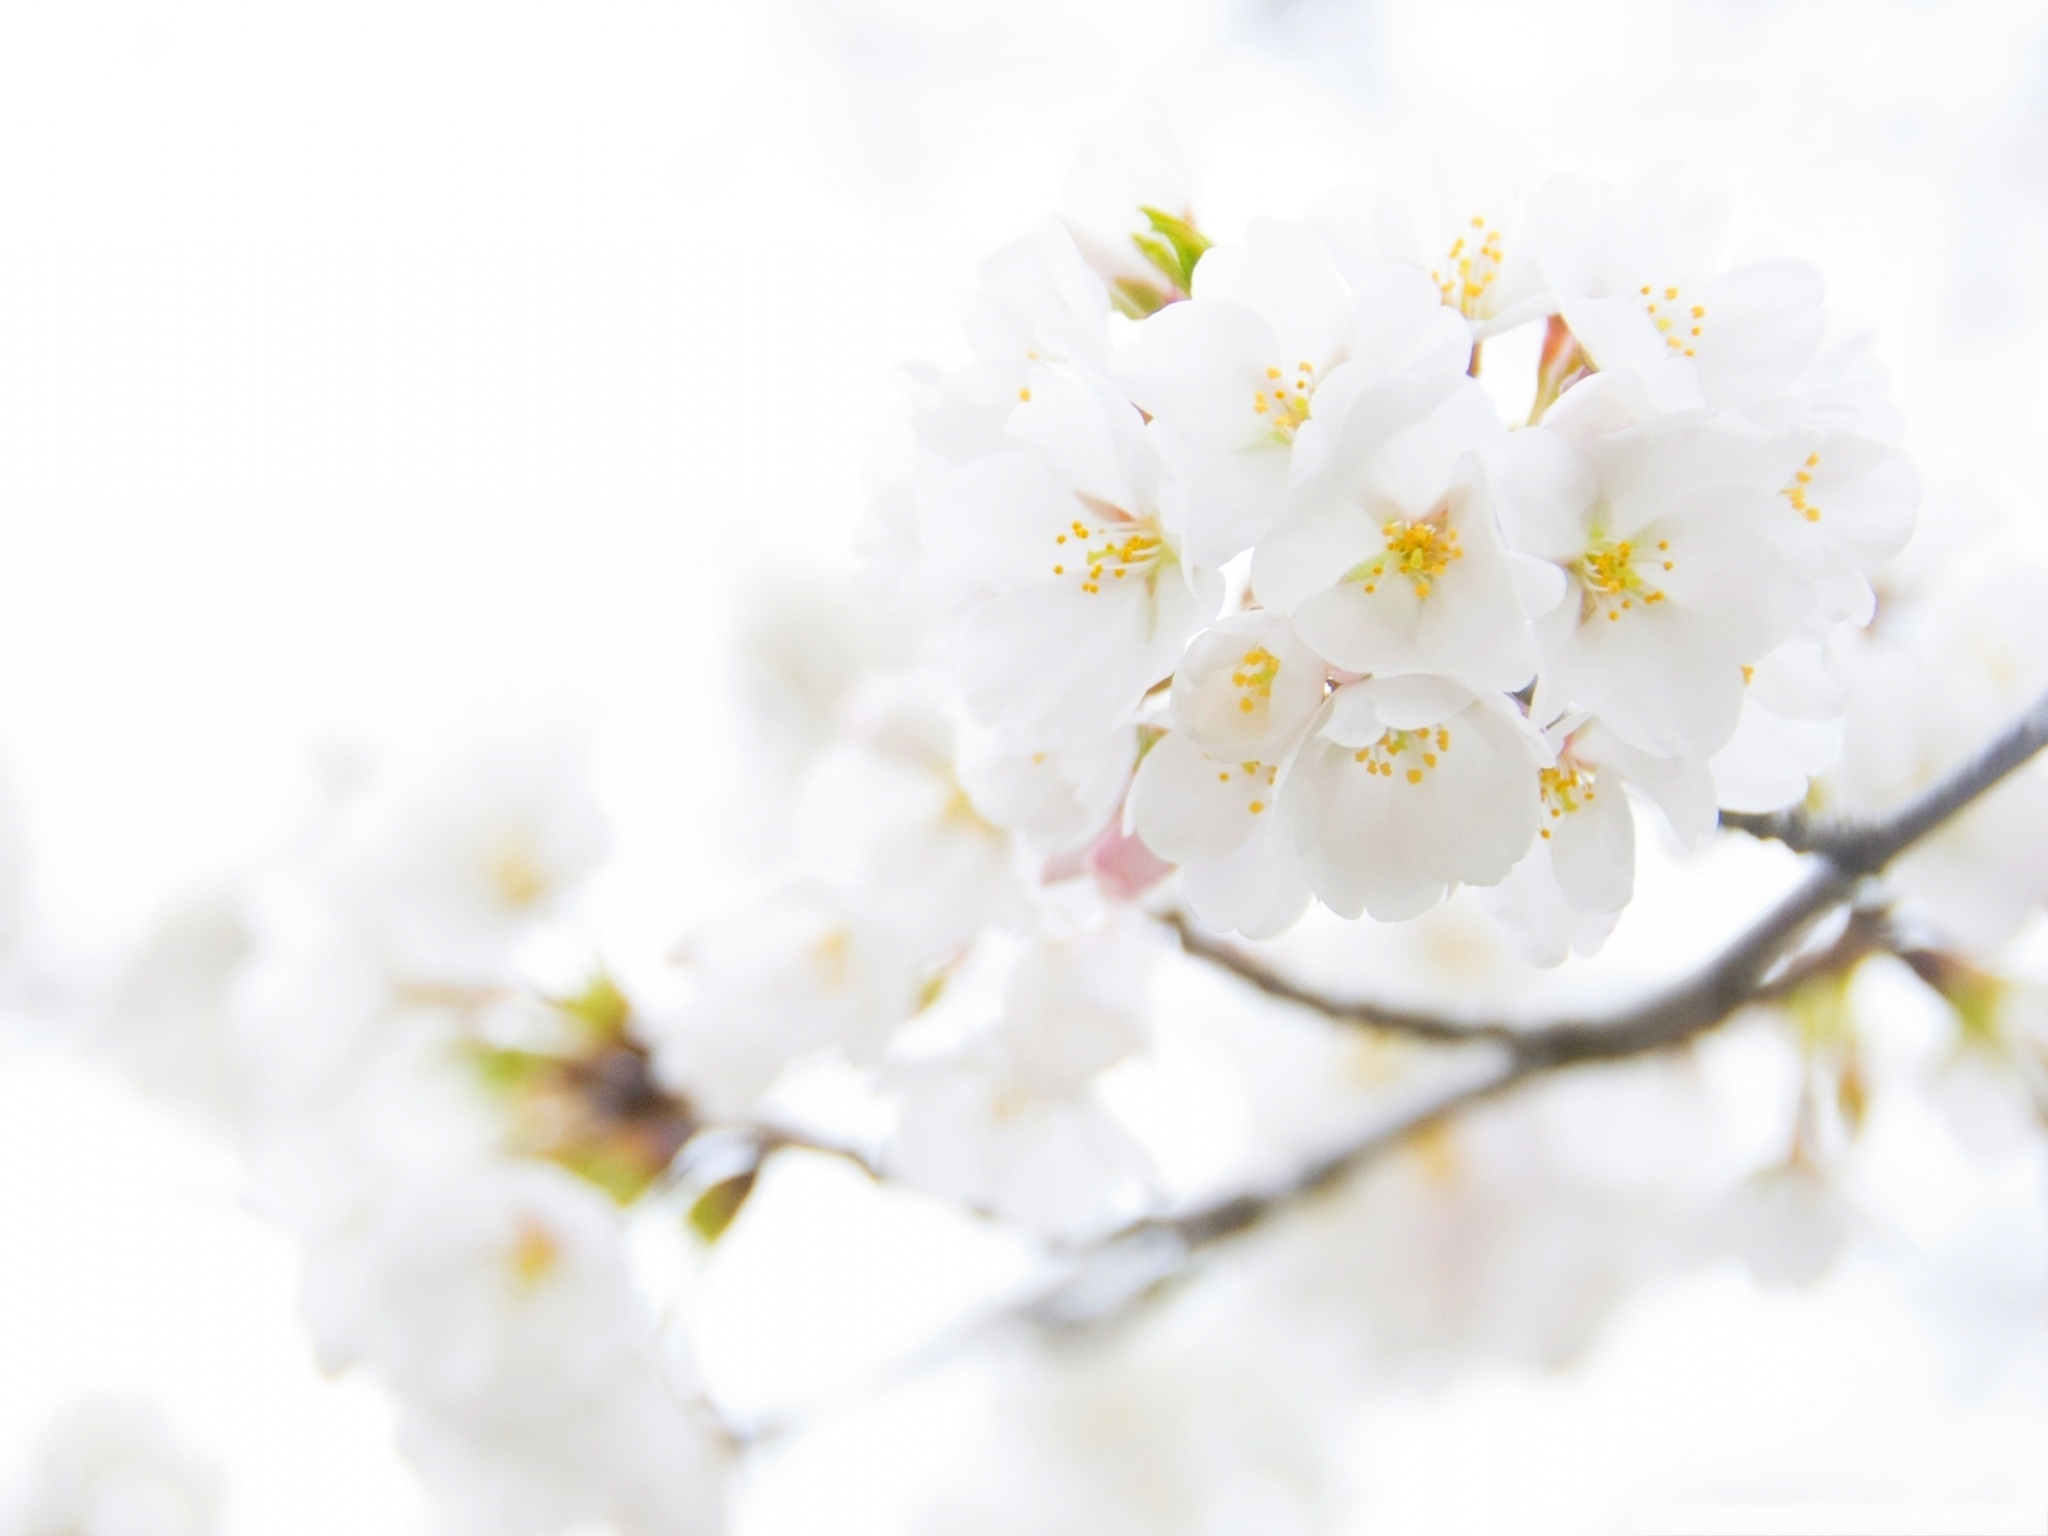 click to free download the wallpaper--White Cherries Picture, Blooming Cherries on Thin Branch, Fresh and White World 2048X1536 free wallpaper download